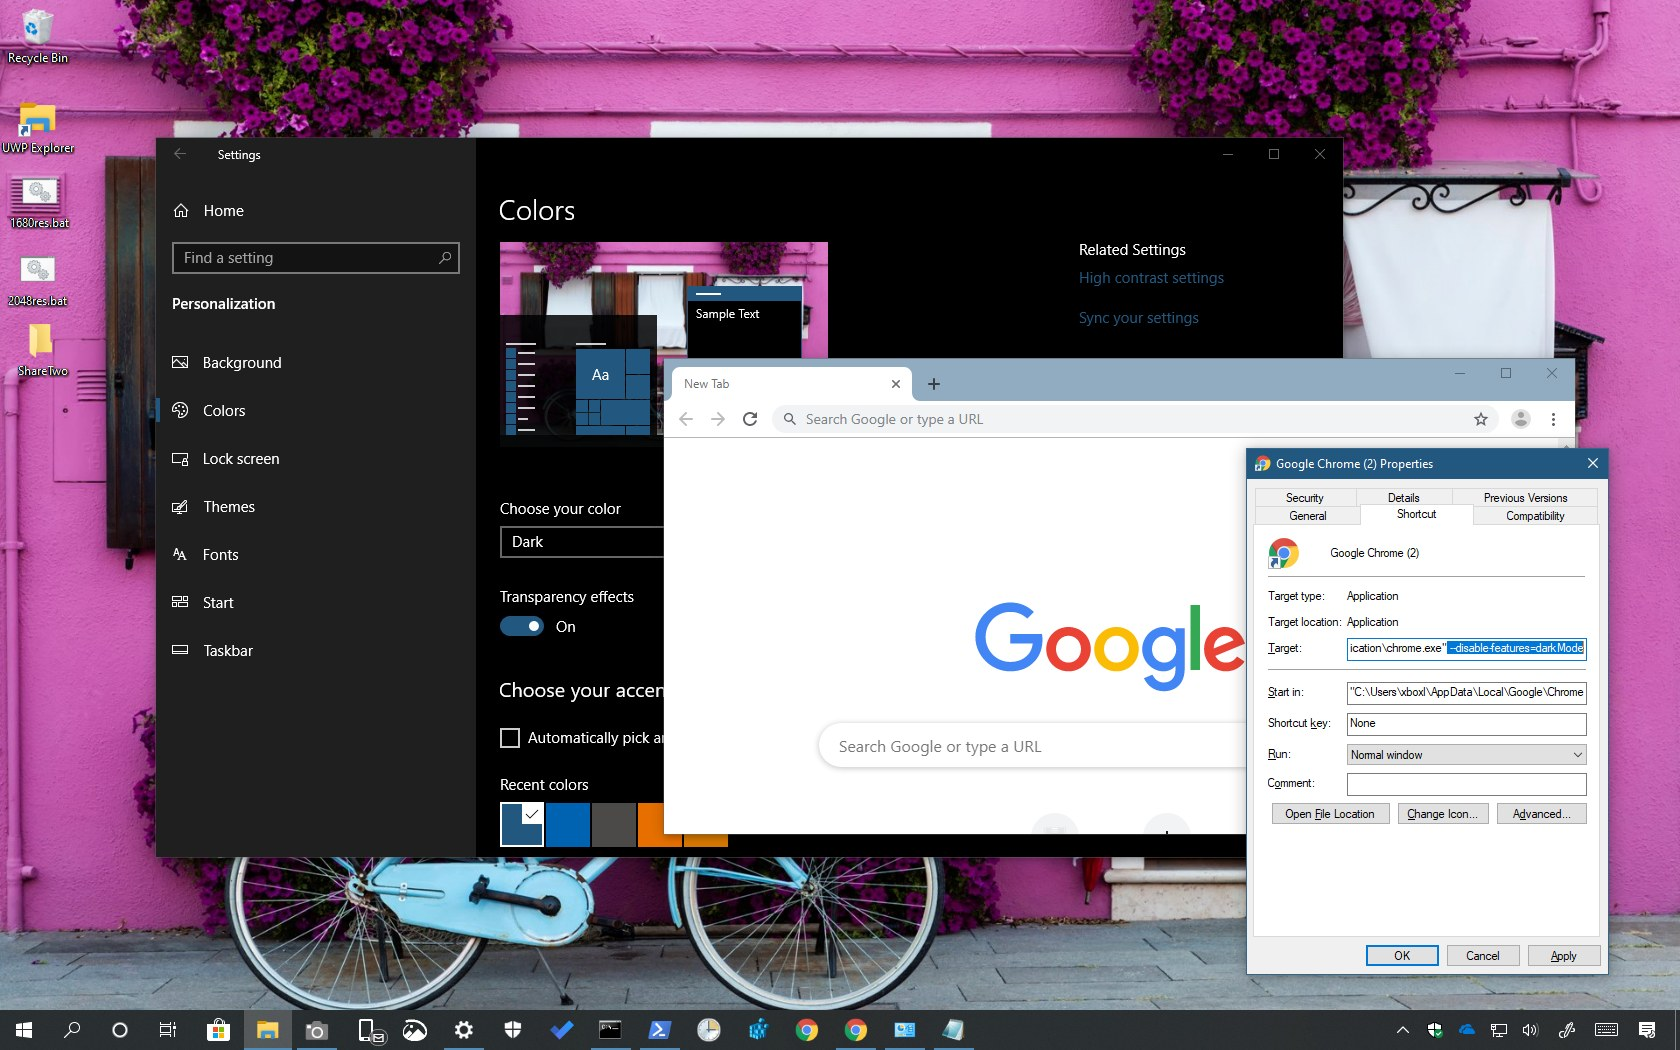 How to disable dark mode for Google Chrome on Windows 10